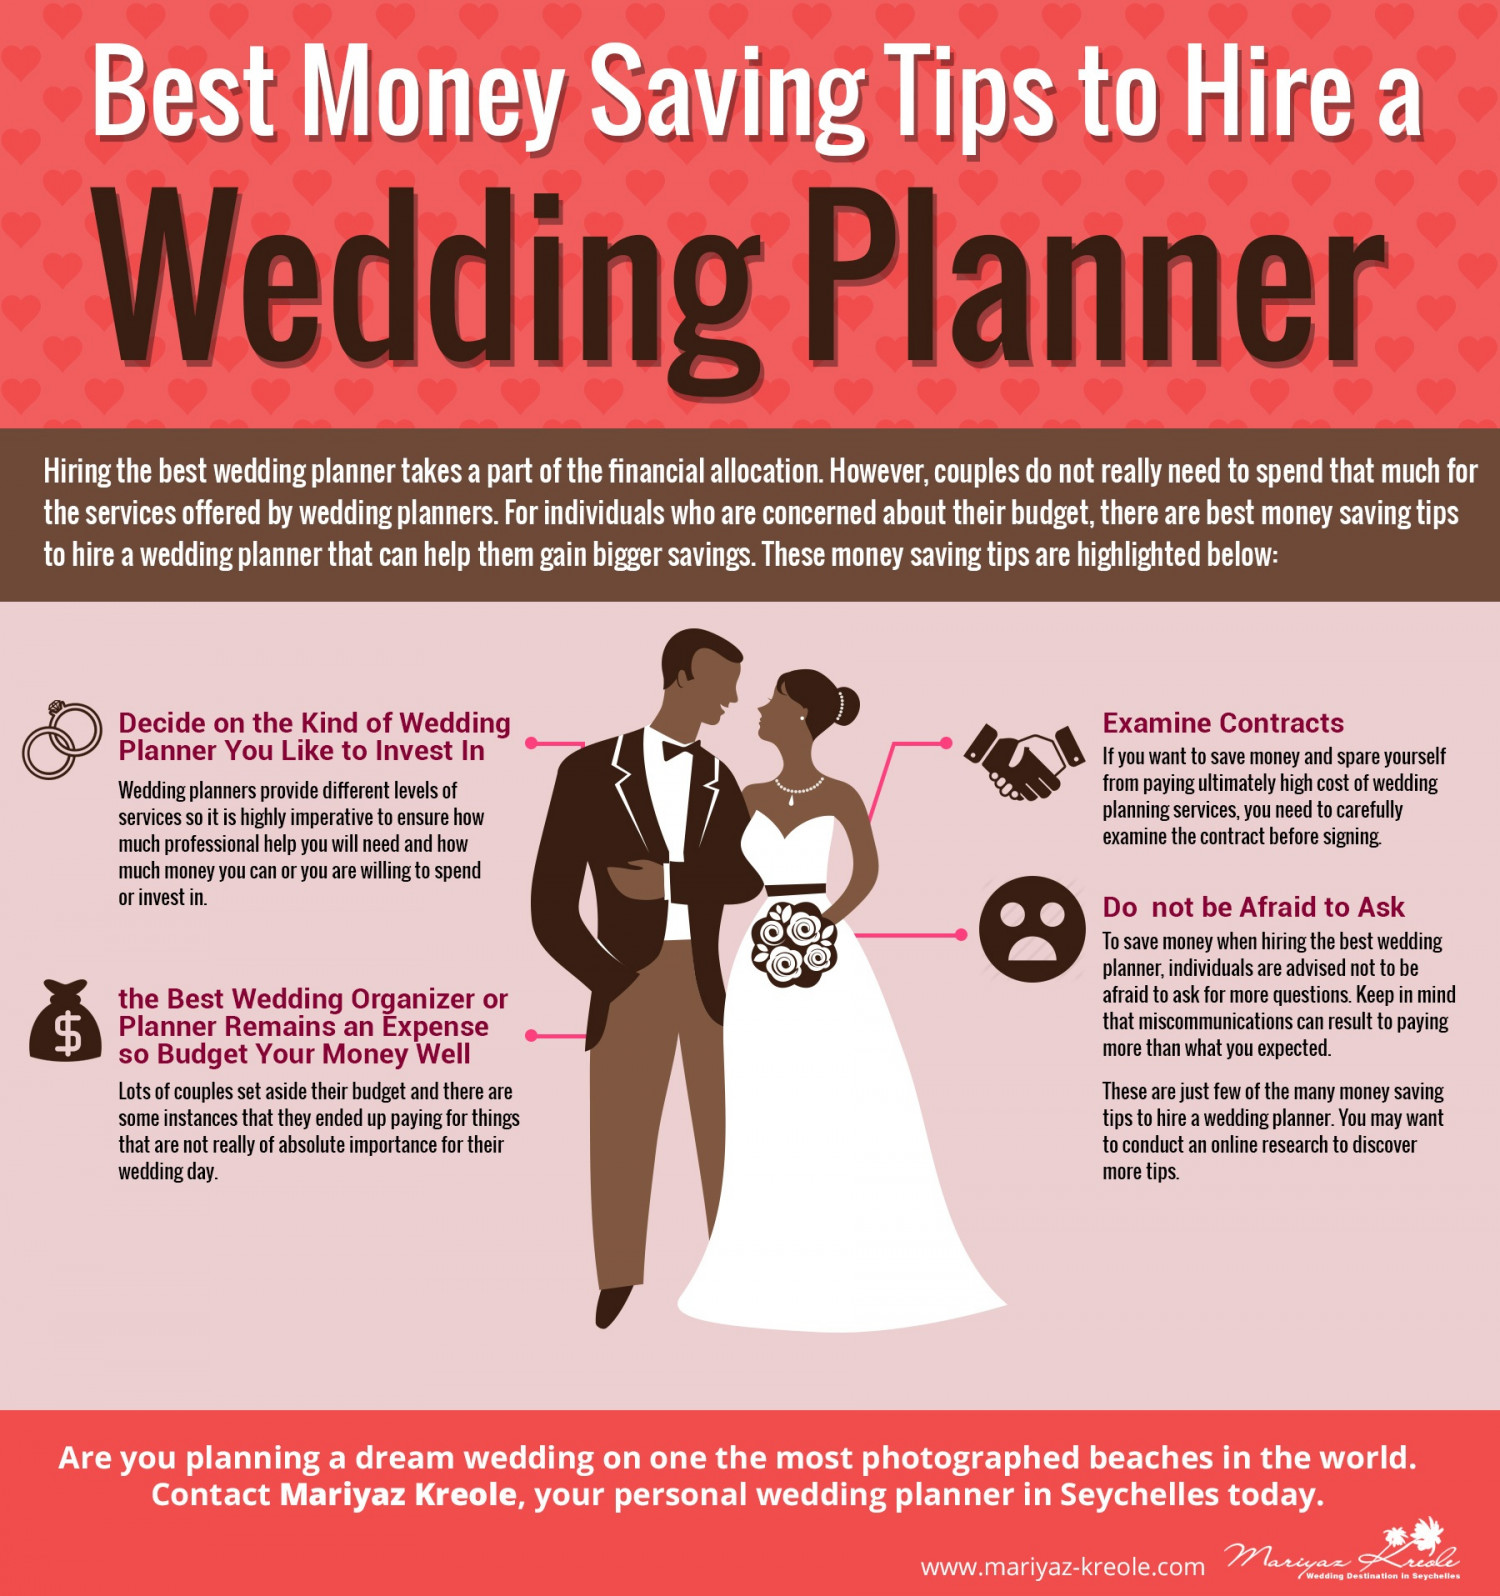 Best money saving tips to hire a wedding planner in seychelles best money saving tips to hire a wedding planner in seychelles infographic solutioingenieria Choice Image